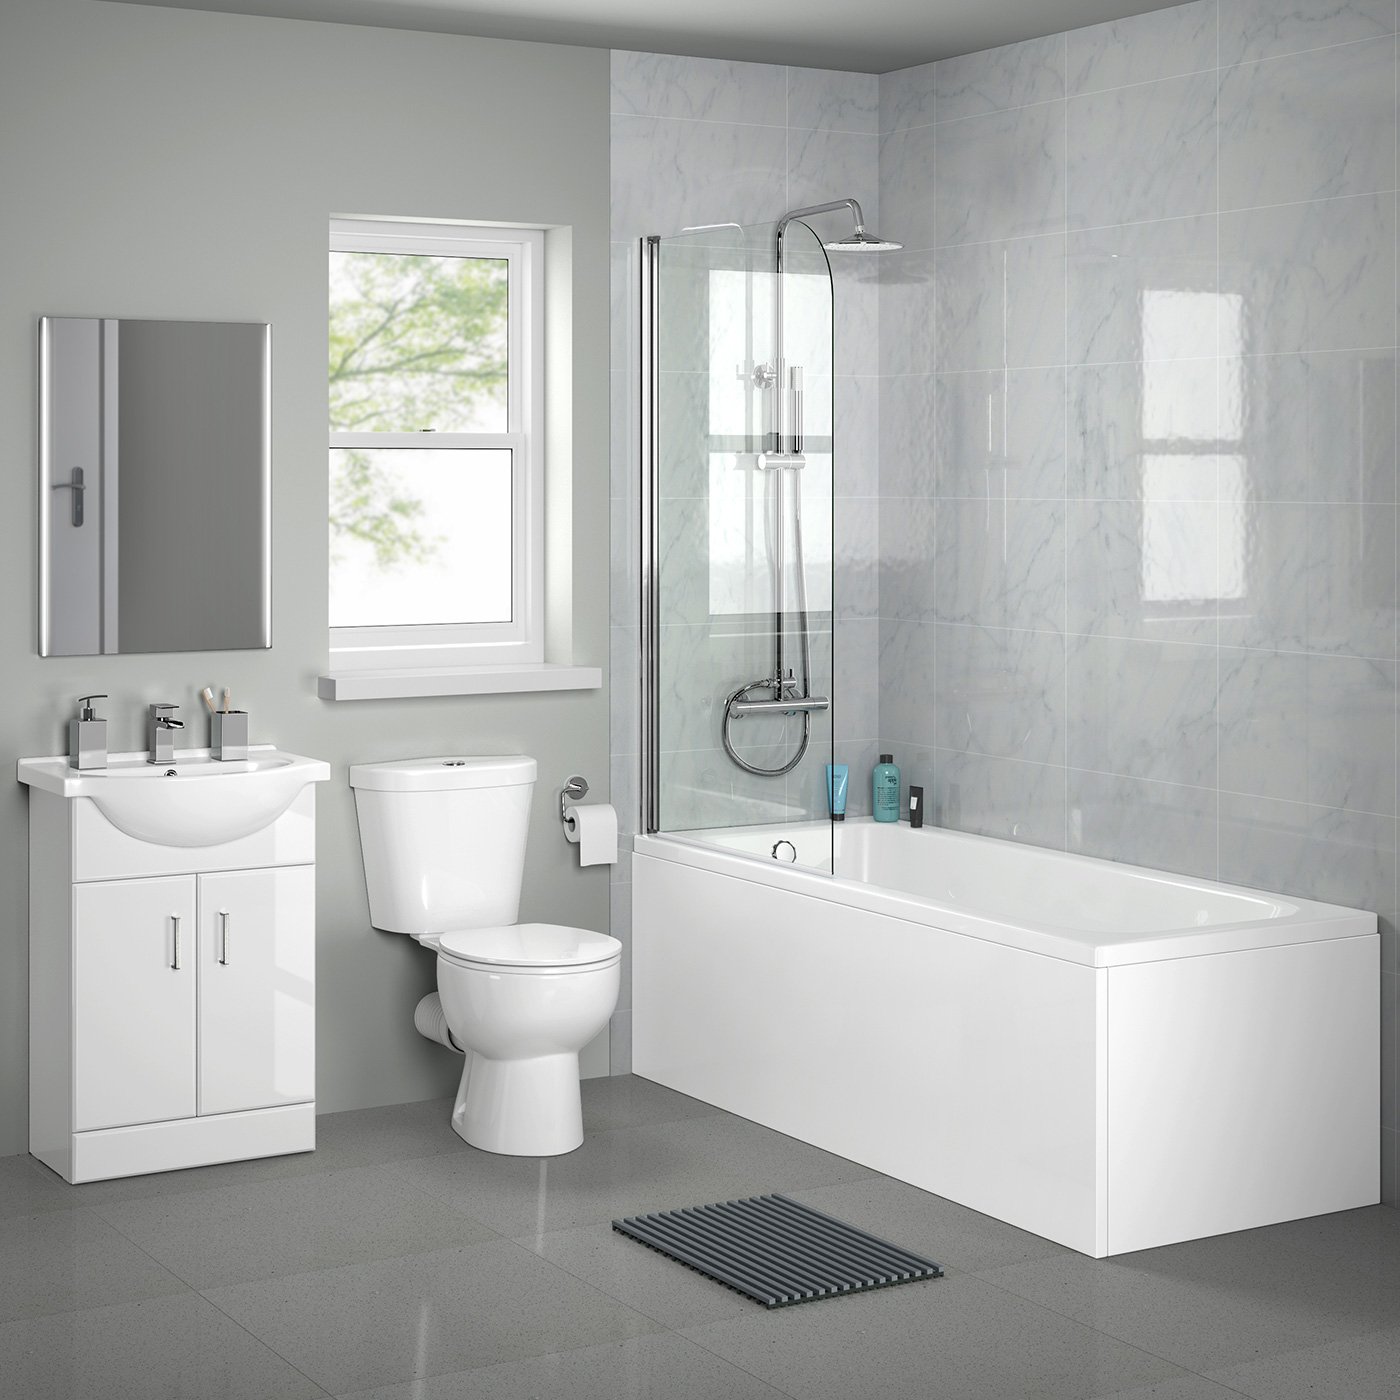 Bathroom Suites Accessories Woodhouse Sturnham Ltd Plumbing Merchants In Peterborough